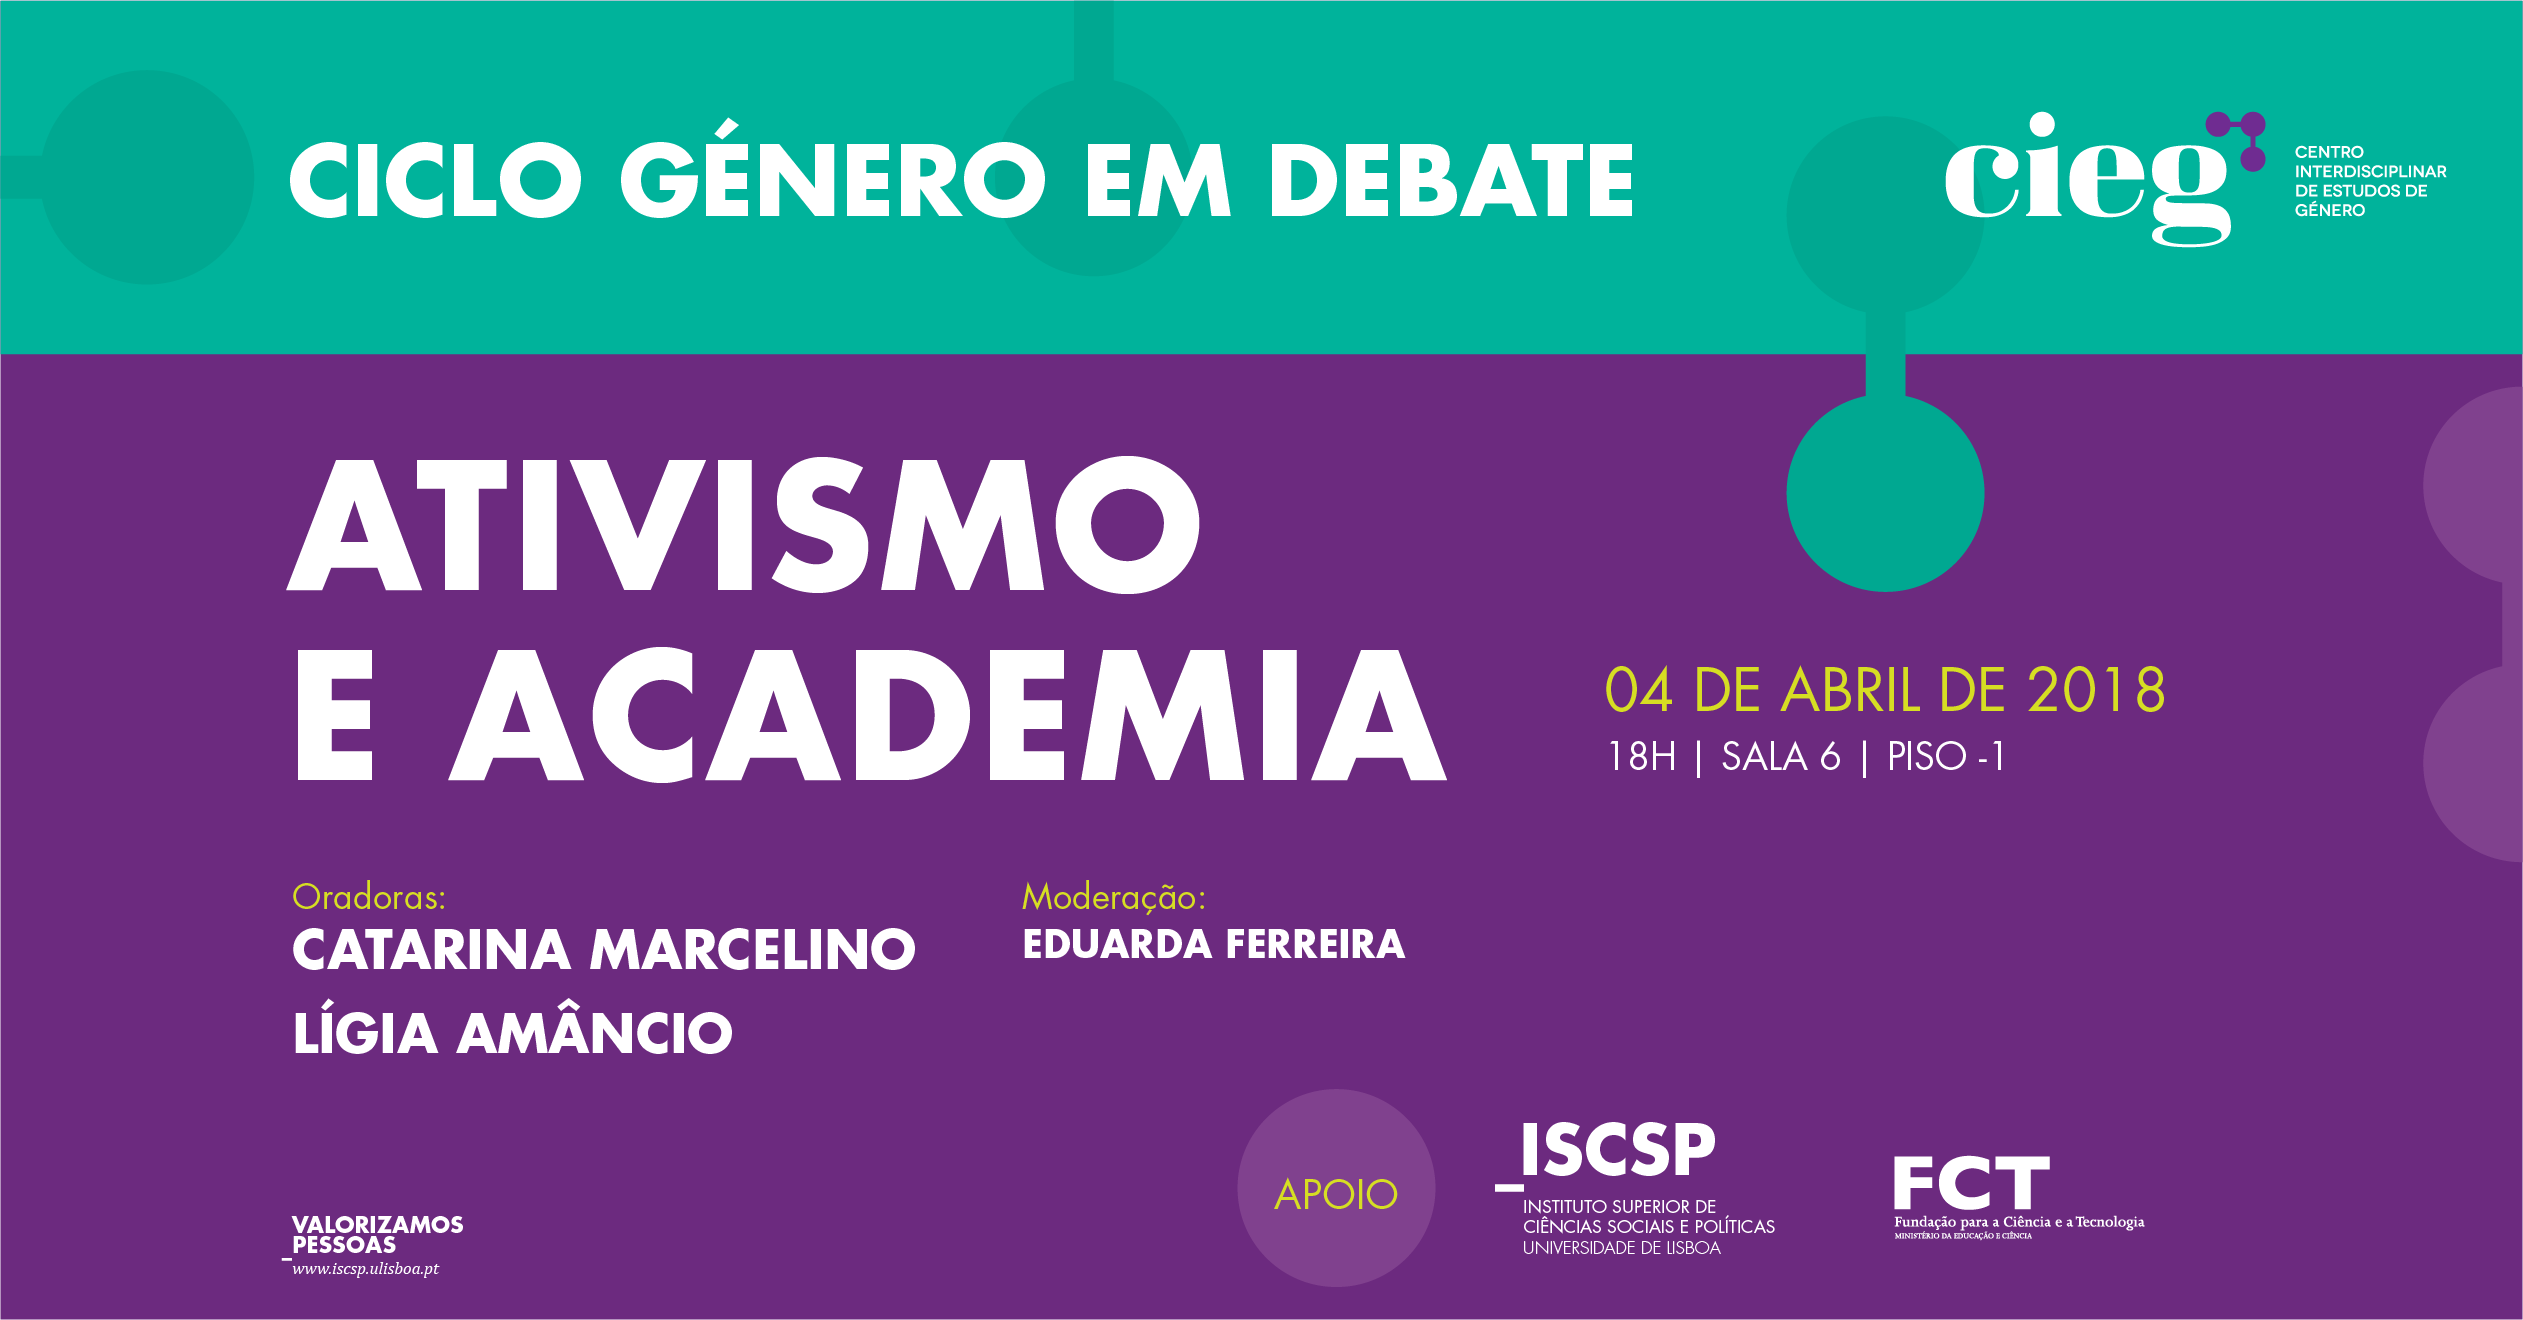 noticia ciclo genero em debate cieg abril 2018